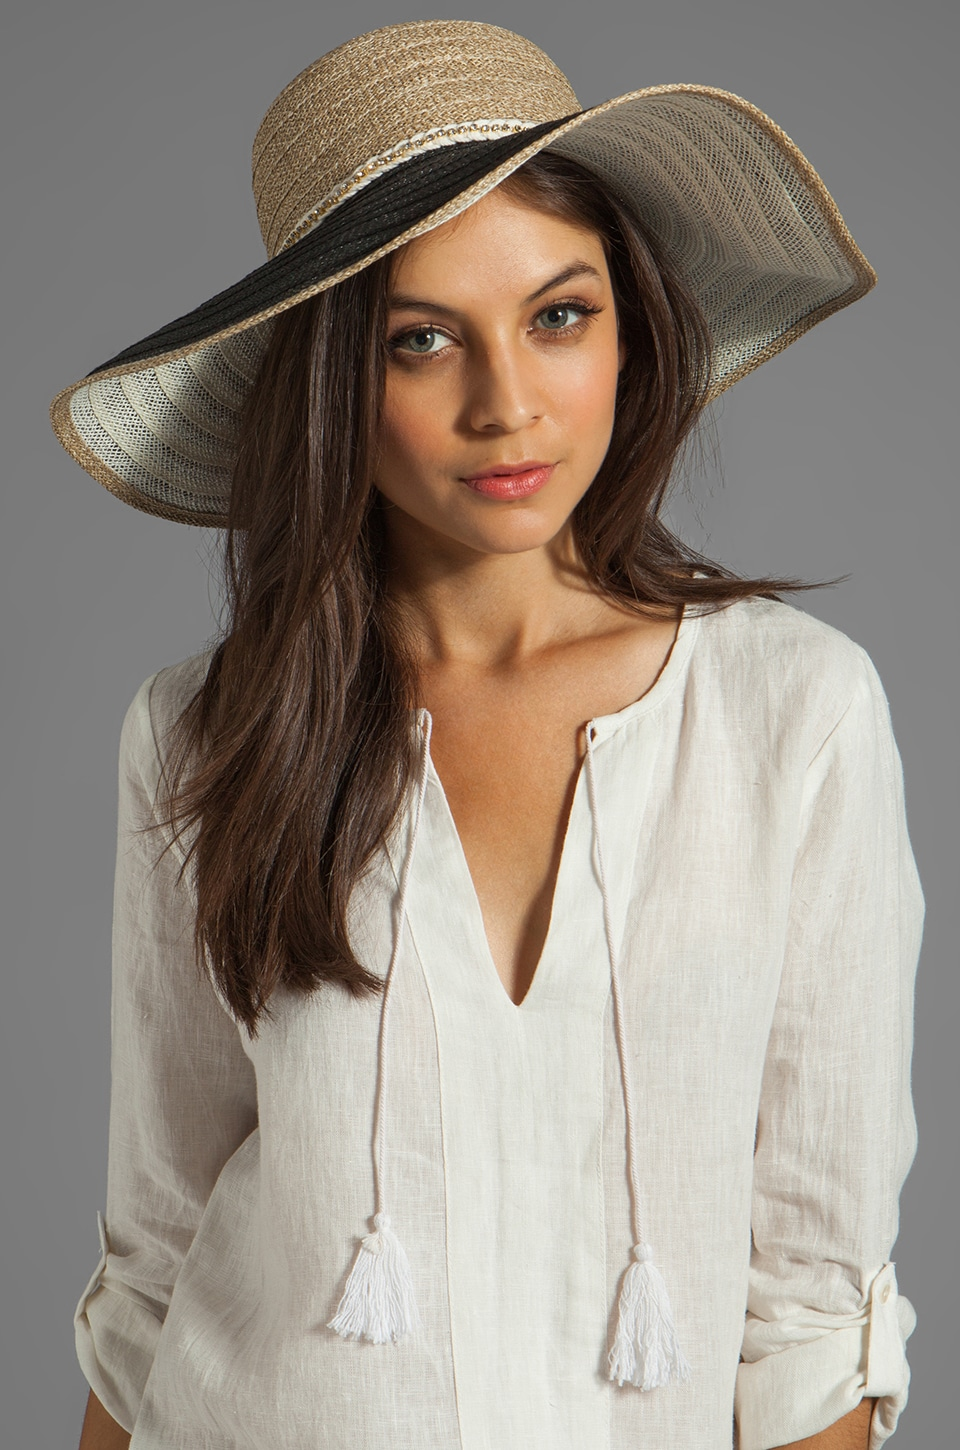 Juicy Couture Oversized Beach Sun Hat in Natural